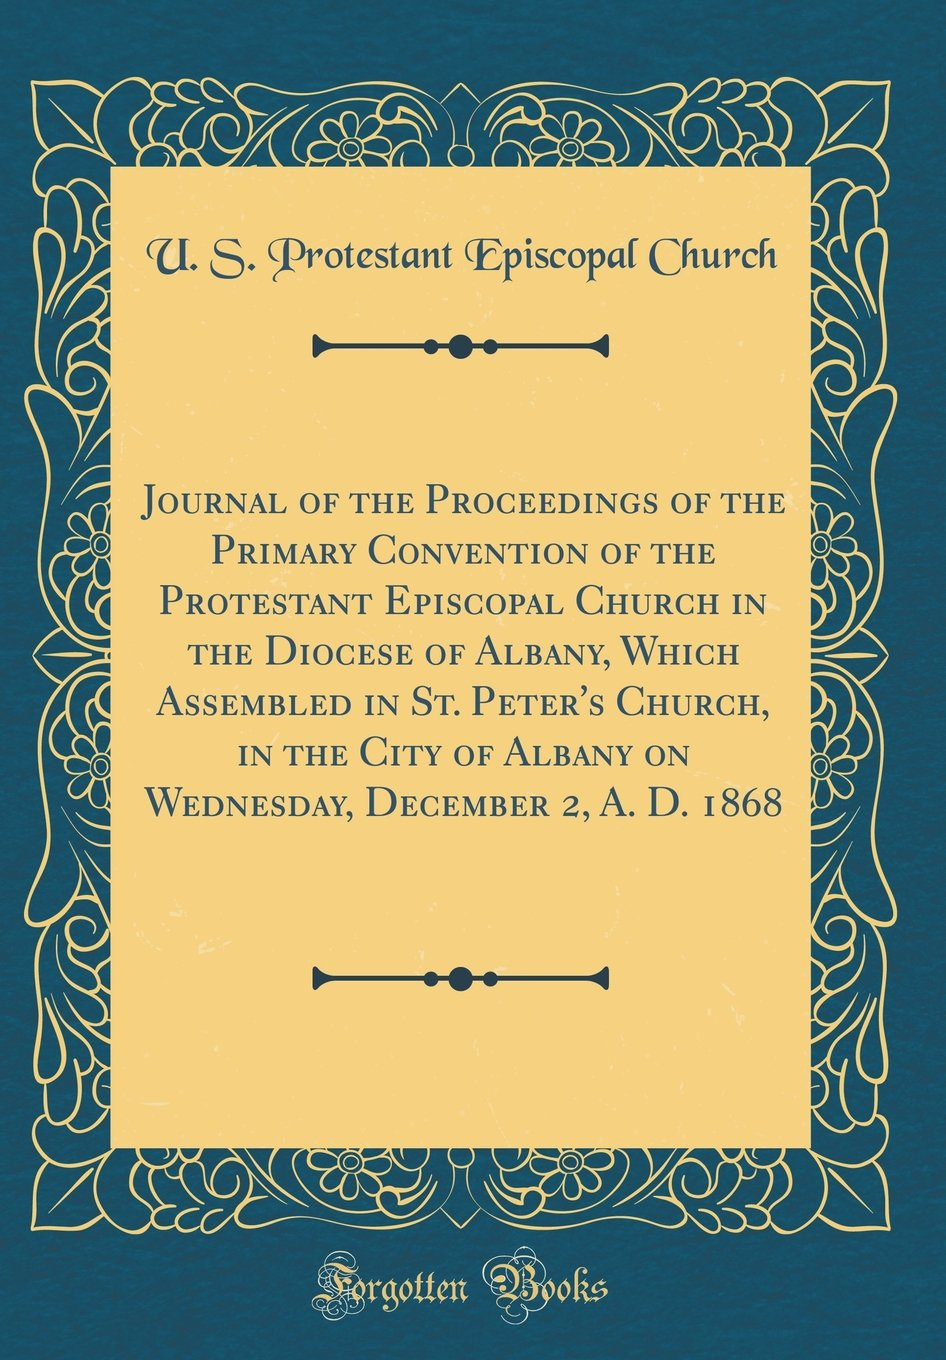 Journal of the Proceedings of the Primary Convention of the Protestant Episcopal Church in the Diocese of Albany, Which Assembled in St. Peter's ... December 2, A. D. 1868 (Classic Reprint) pdf epub